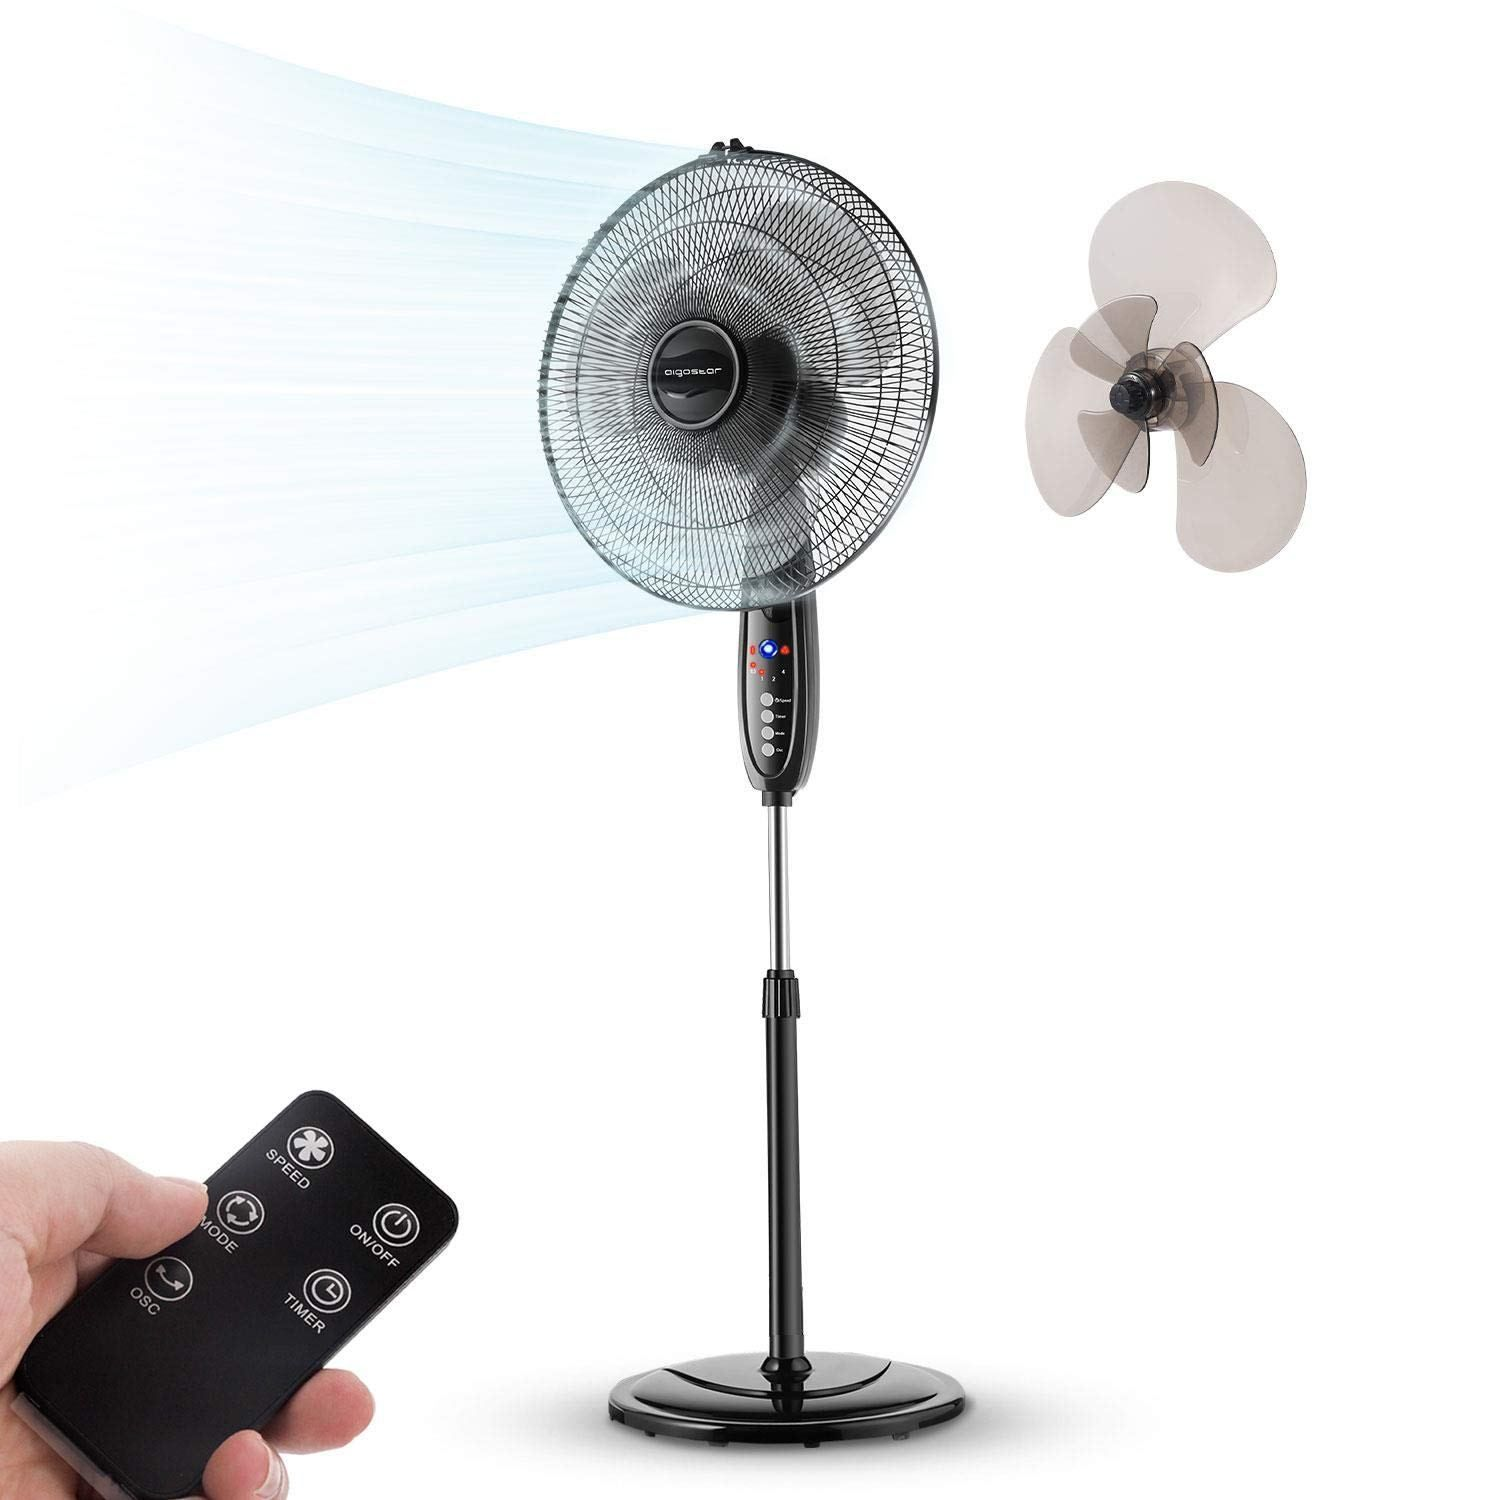 Boughtagain Awesome Goods You Bought It Again Floor Fan Standing Fans Pedestal Fans